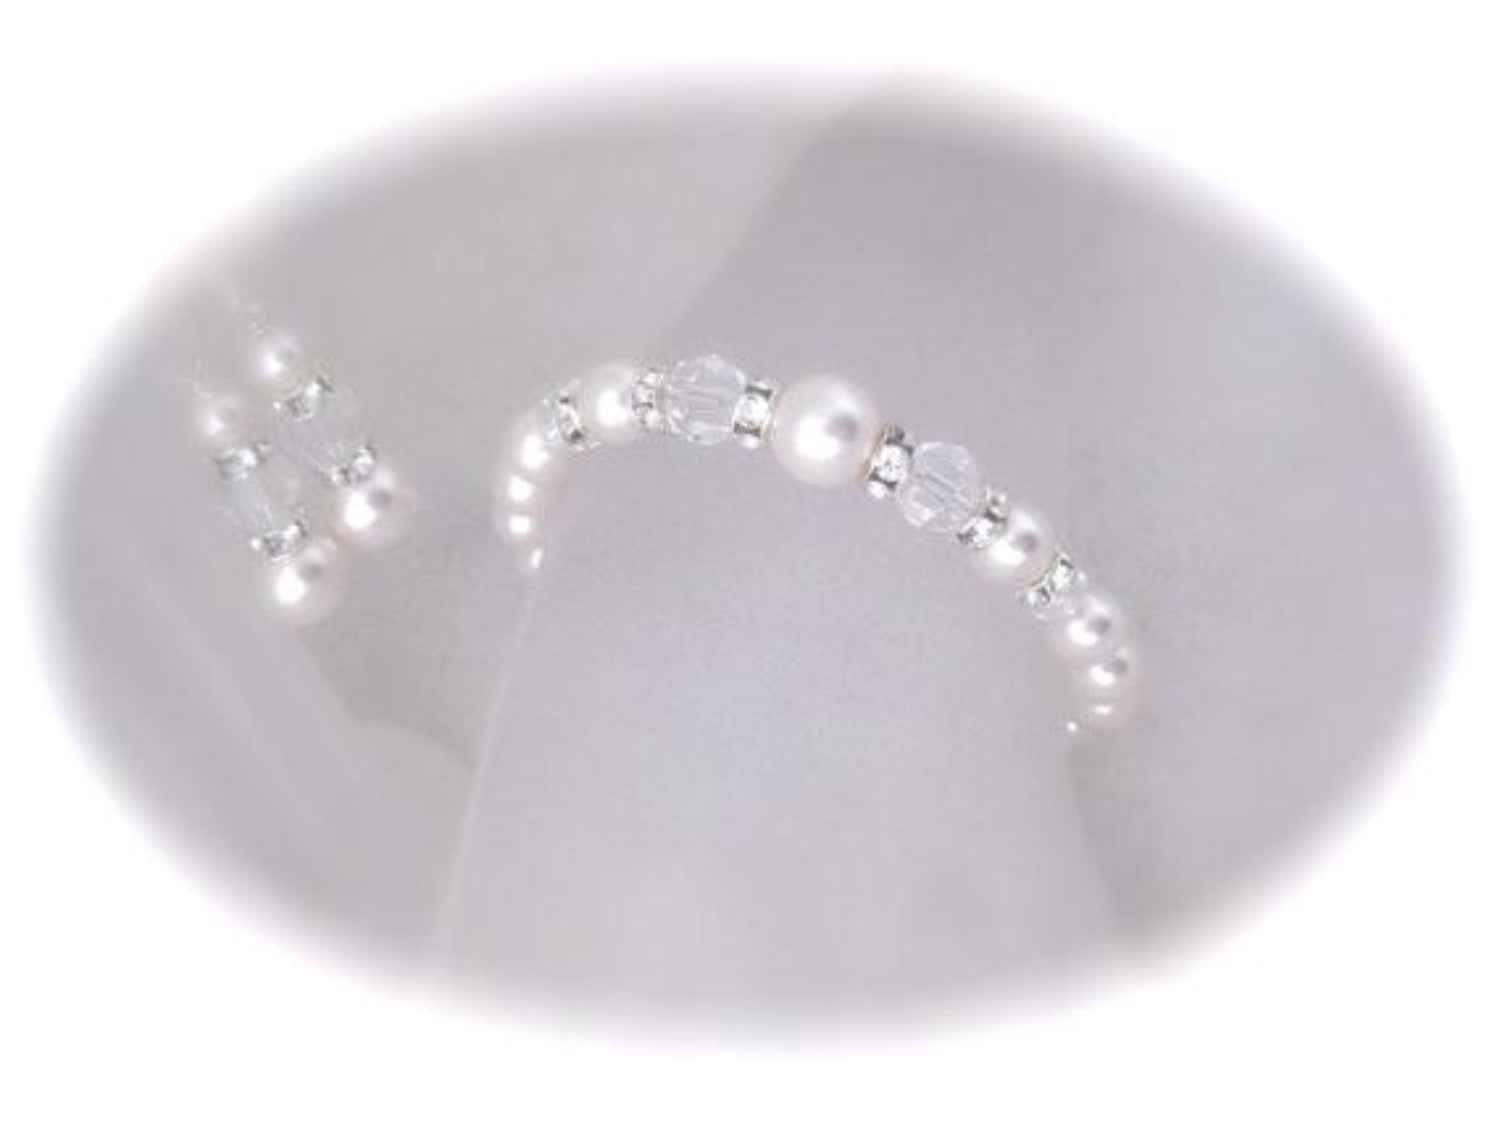 White pearl and crystal bracelet and earrings made with Swarovski elements - Clairesbridal - 1